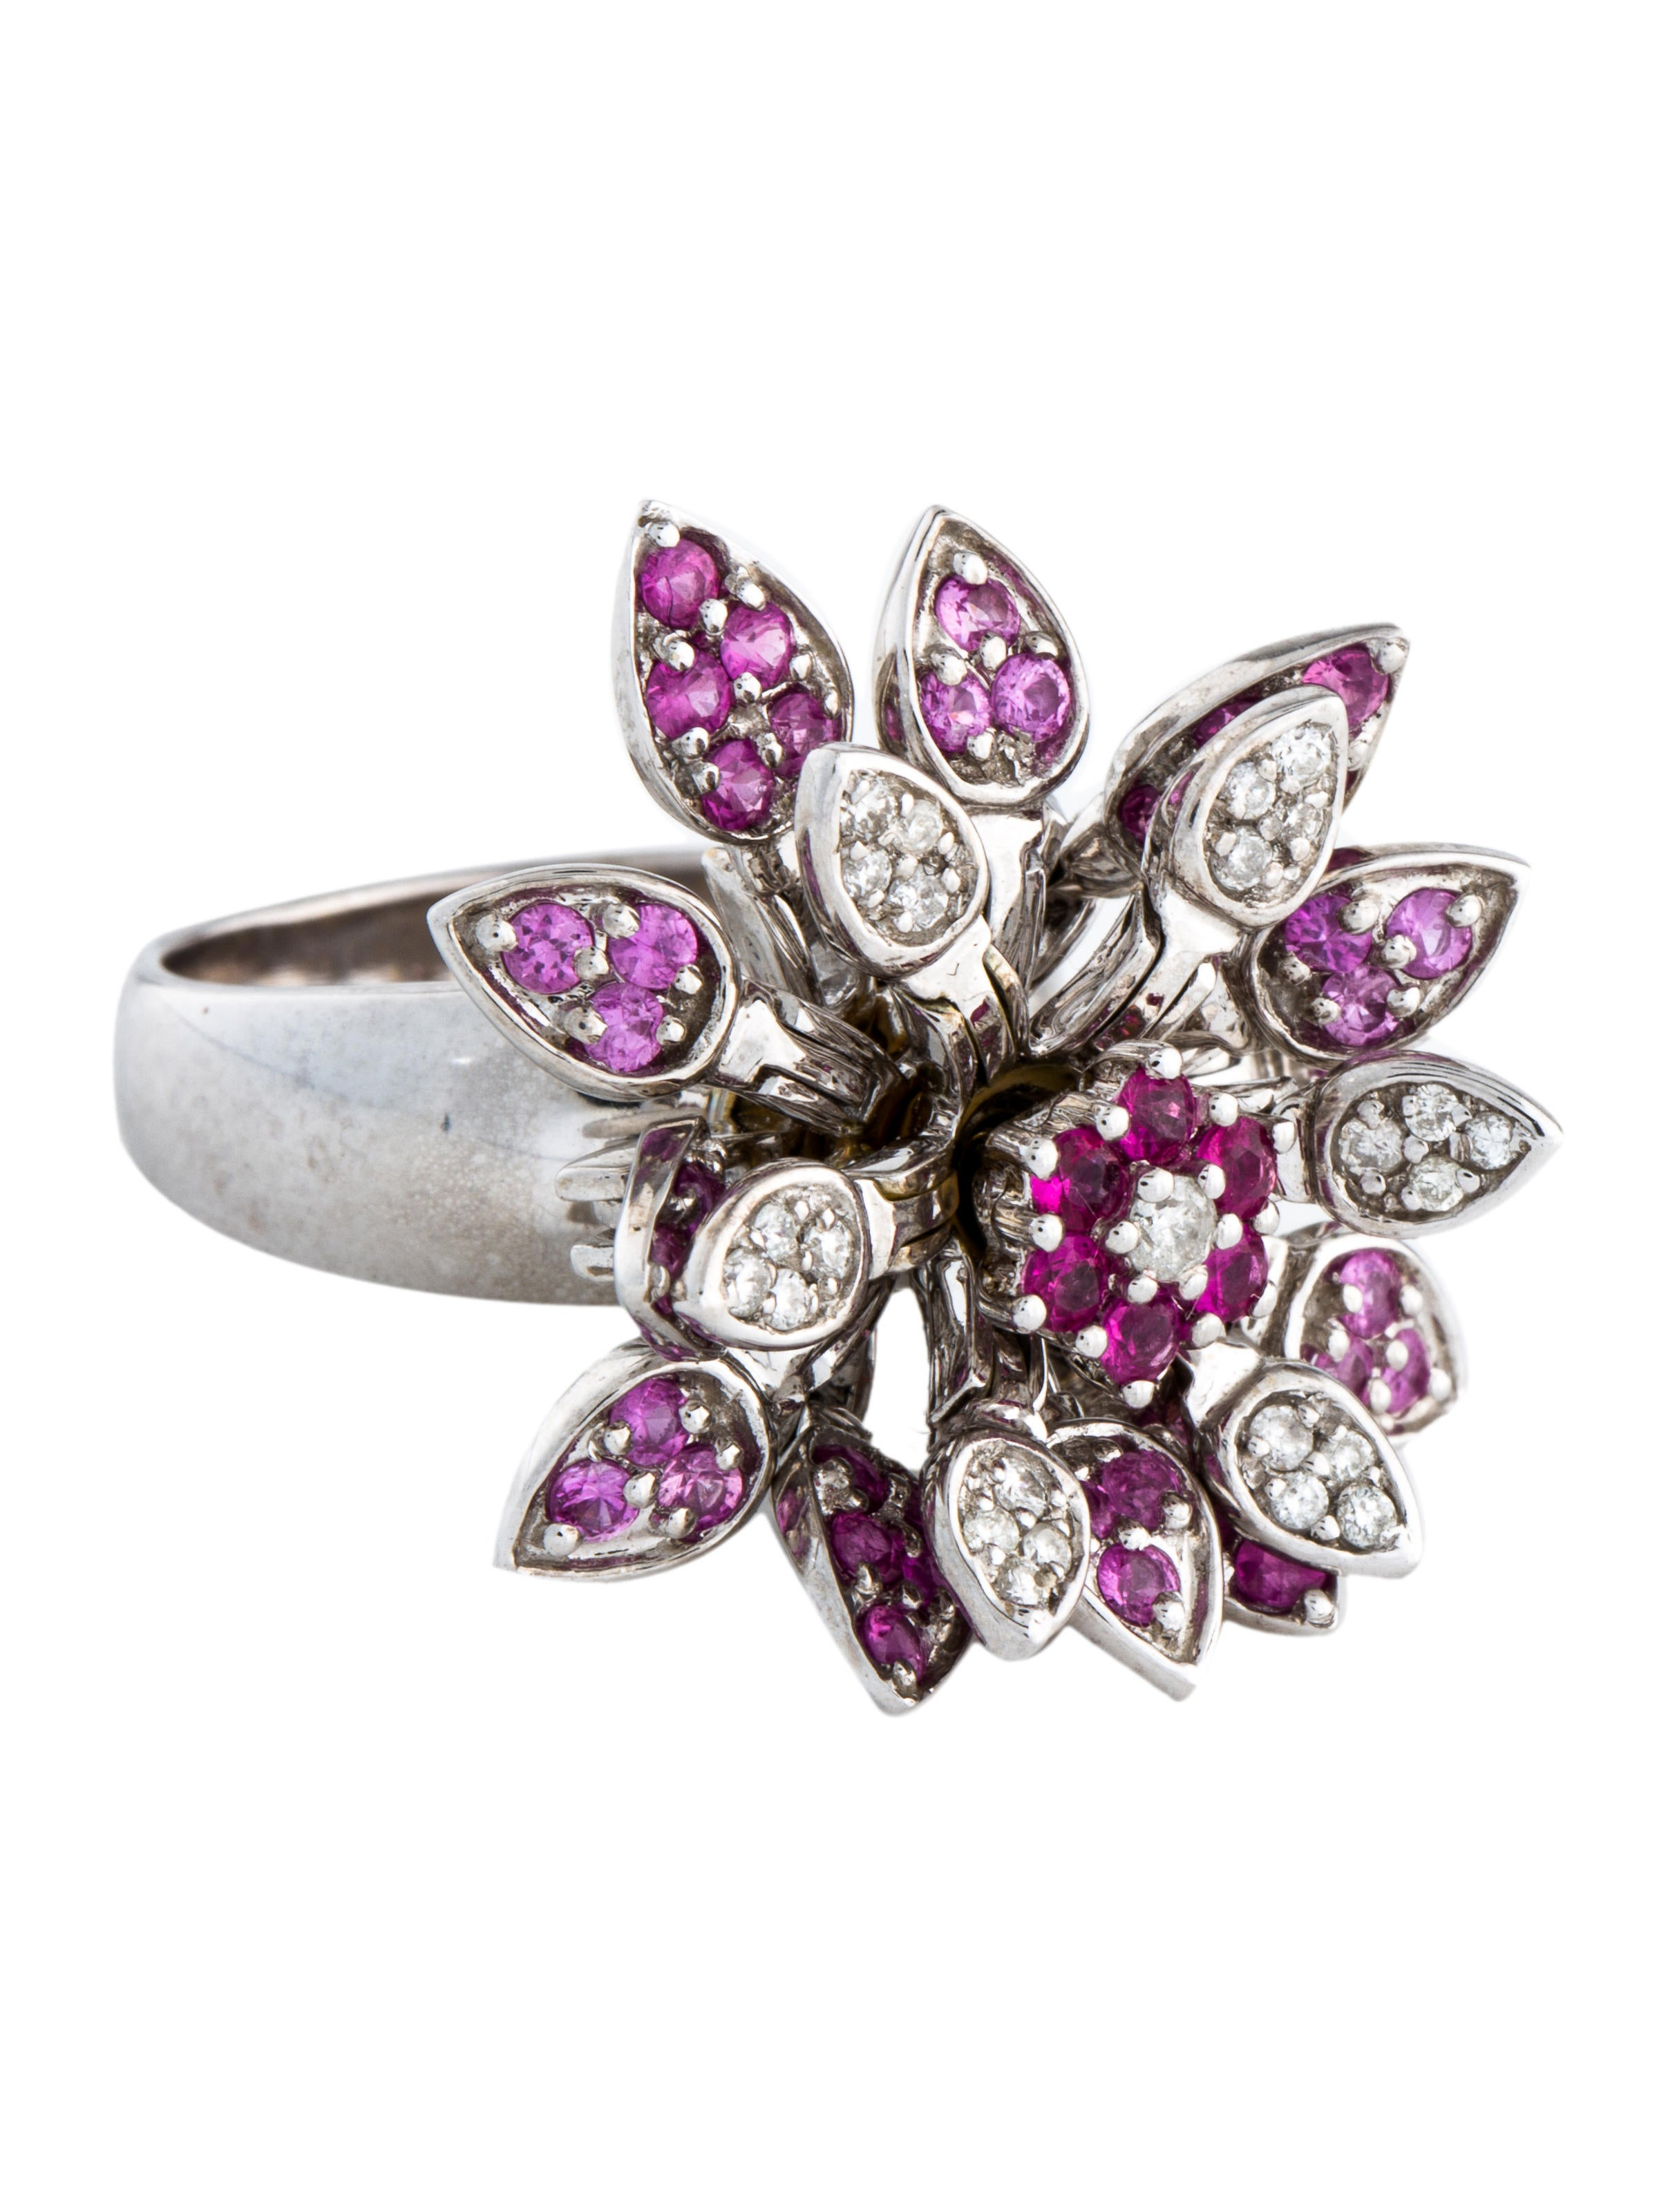 18k Pink Sapphire Diamond Articulated Flower Ring Rings